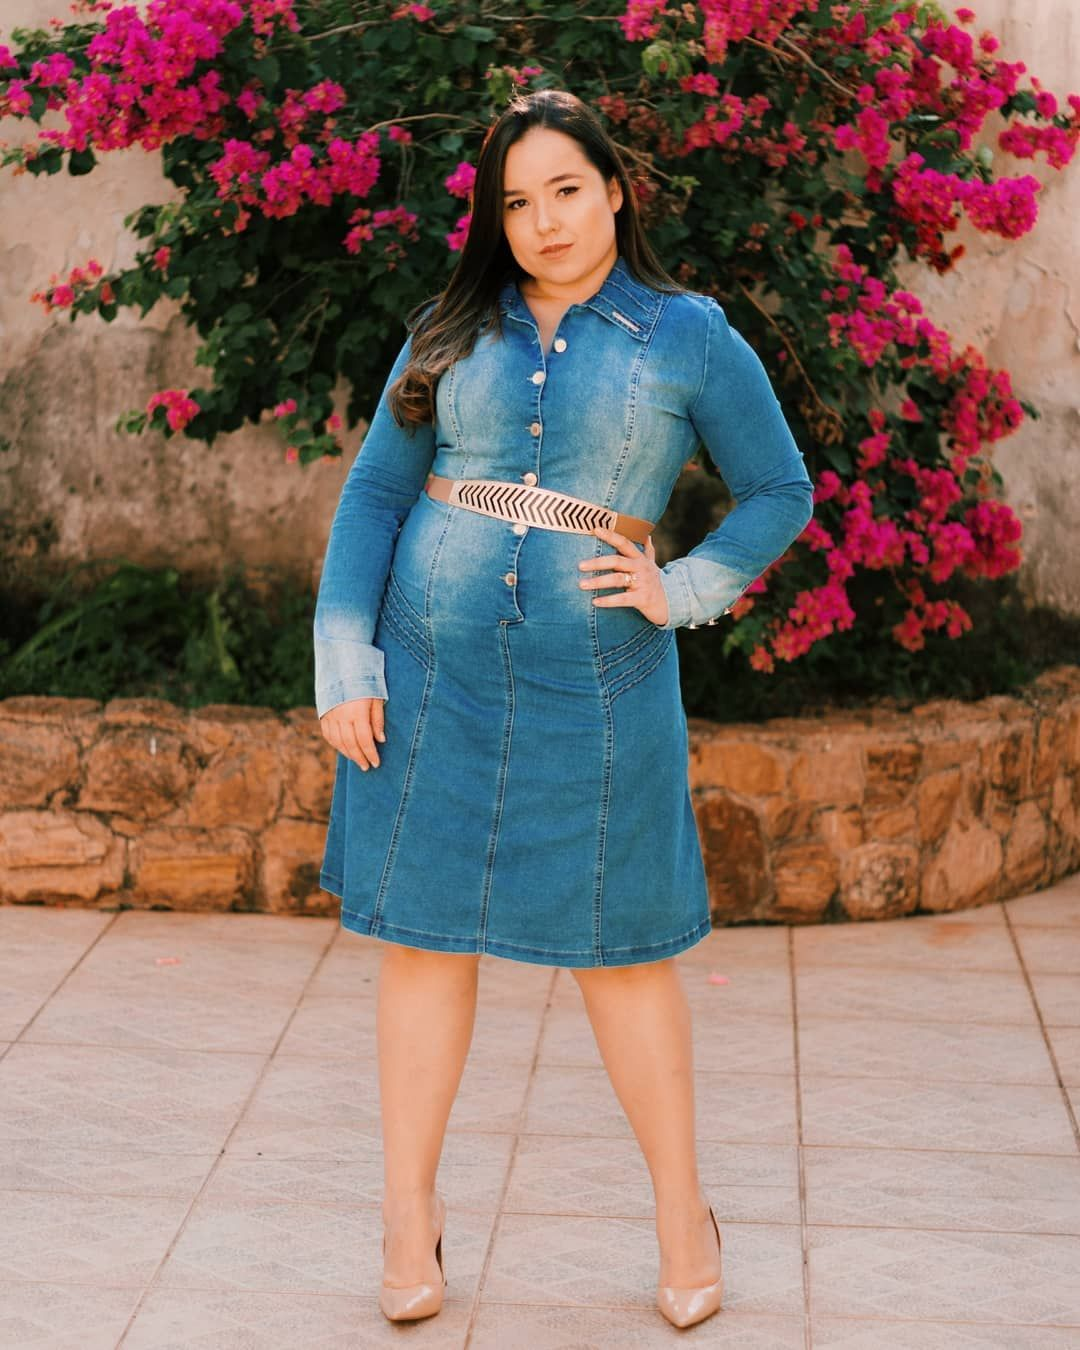 f61378853 Thick Girls Outfits, Curvy Plus Size, Plus Size Model, Plus Size Beauty,